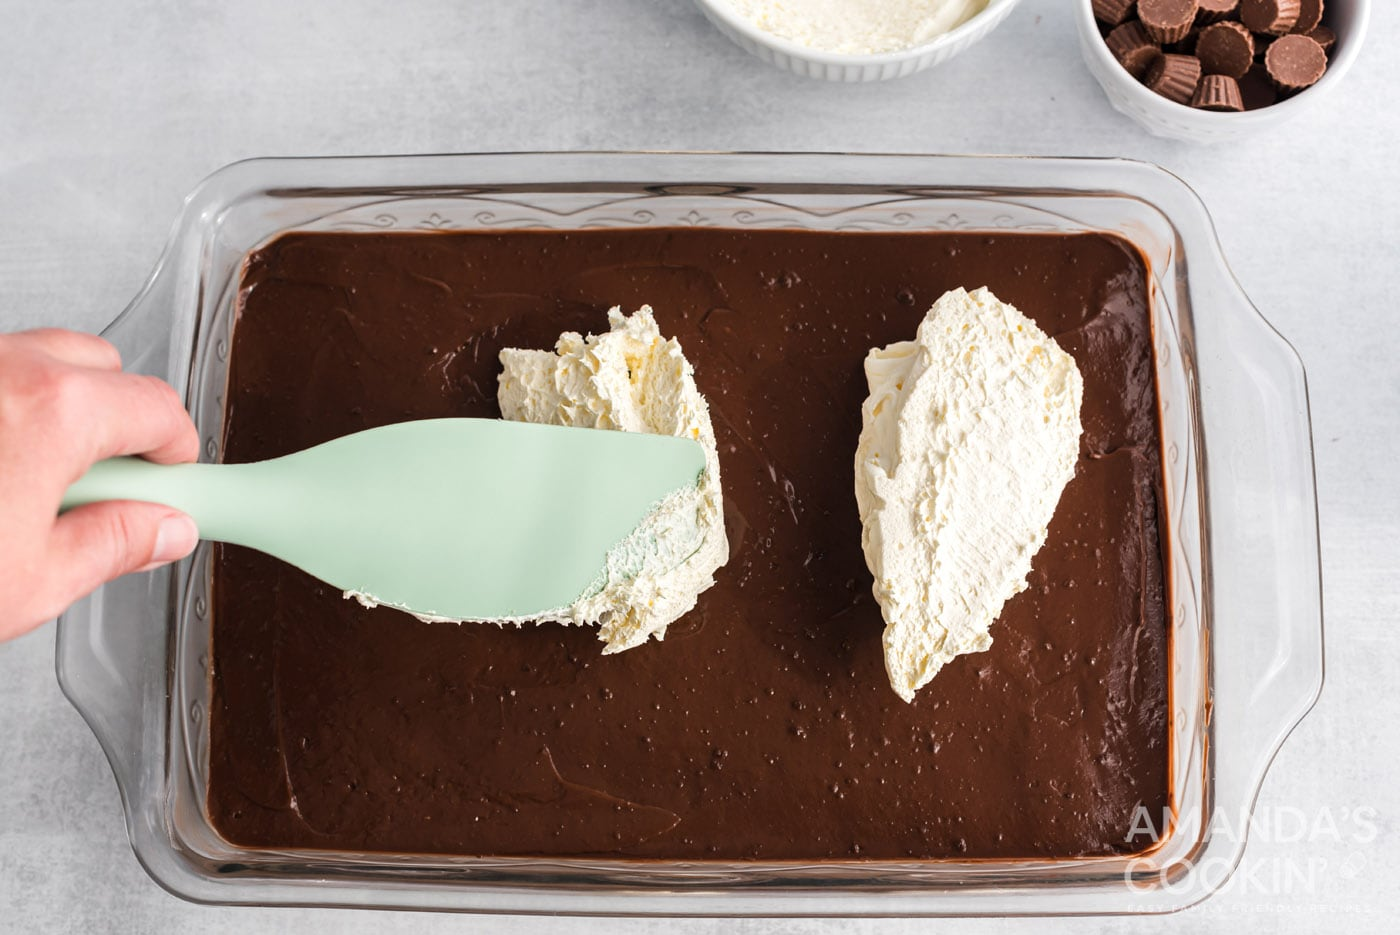 rubber spatula spreading whipped topping over chocolate pudding